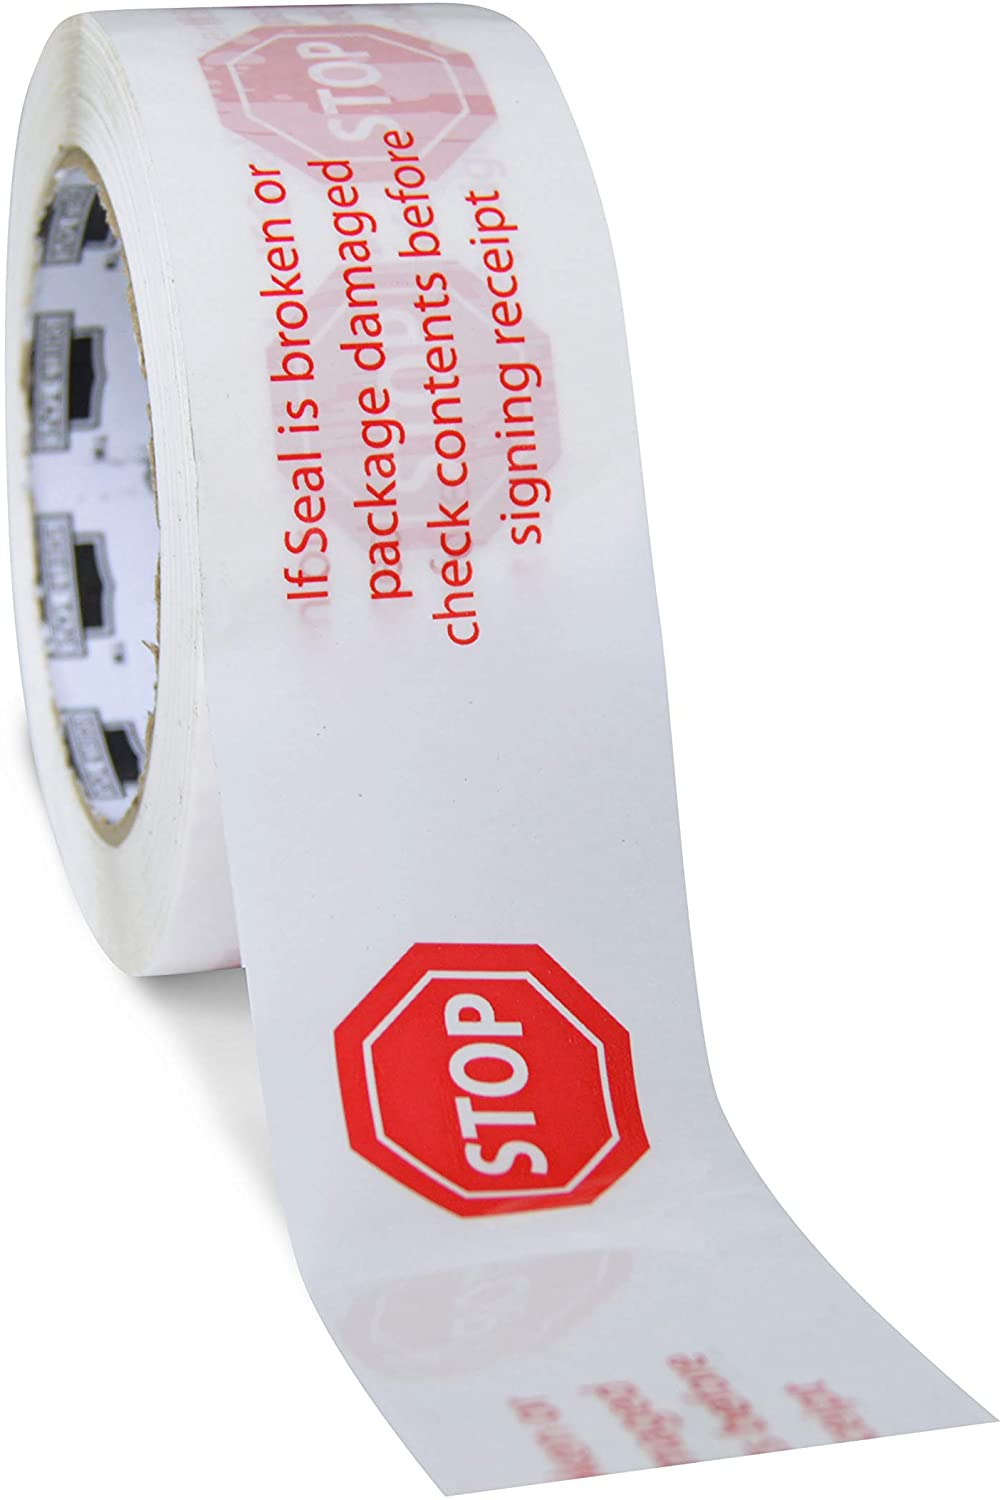 Stop Sign Packing Tape, Preprinted Shipping Tape Rolls, White Red, 3 Inch x 110 Yards, Pack of 12 Rolls